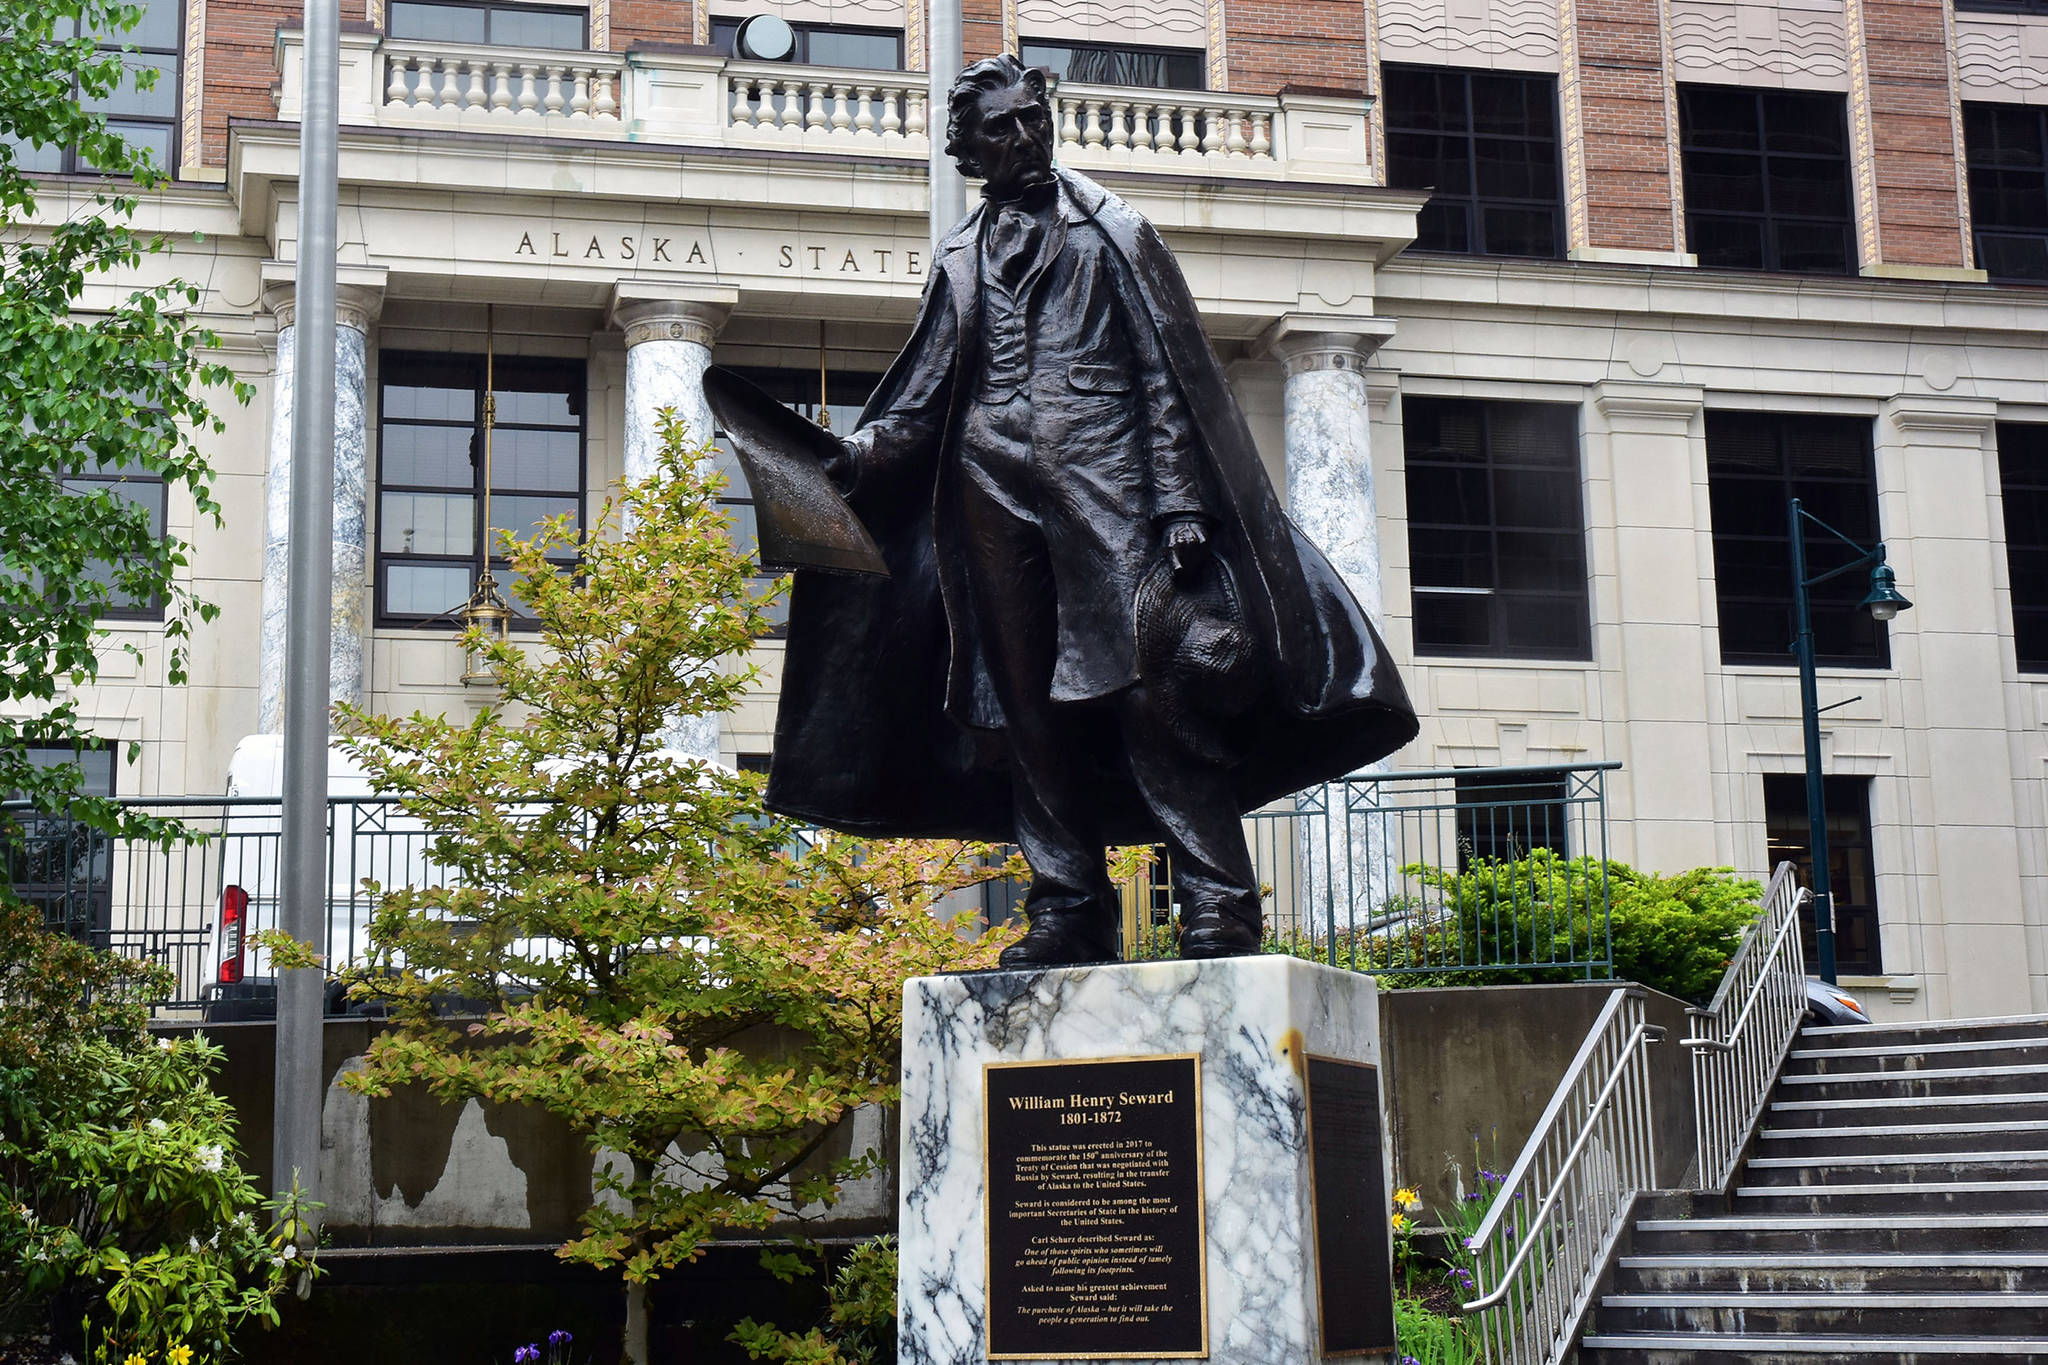 A statue of William Henry Seward, former U.S. Senator and governor of New York, Vice President and Secretary of State who negotiated the purchase of the Alaska territory from the Russian Empire in 1867 on Tuesday, June 16, 2020. (Peter Segall | Juneau Empire)